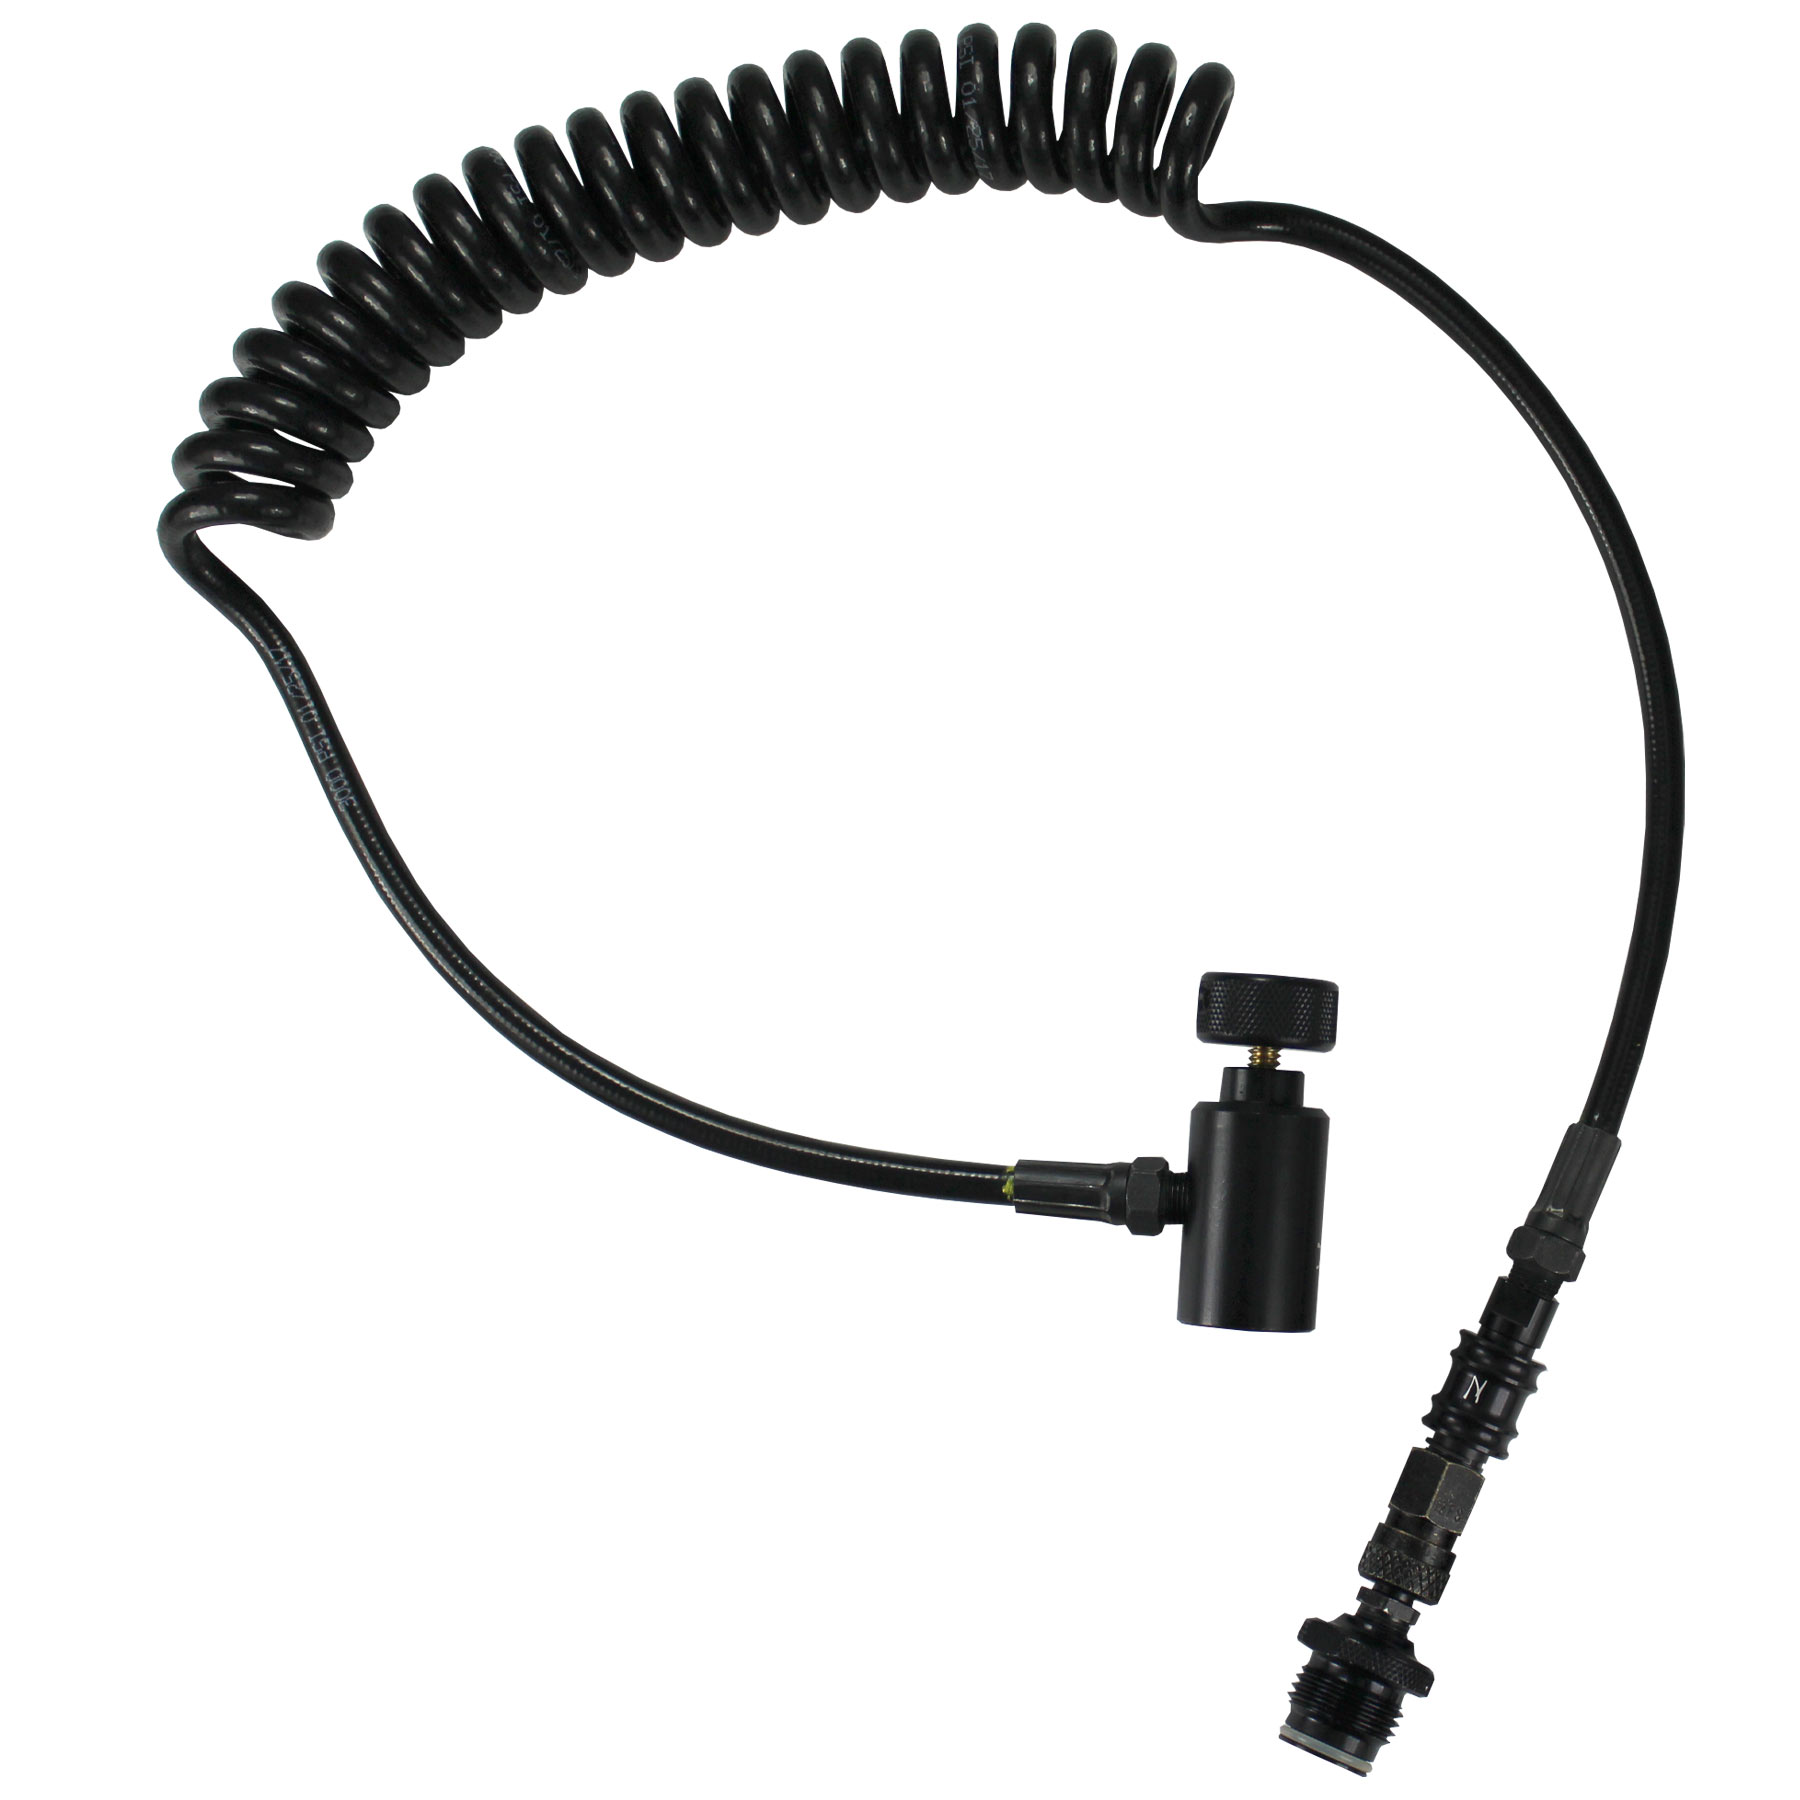 Ninja Paintball Coiled Remote Hose With Slide Check